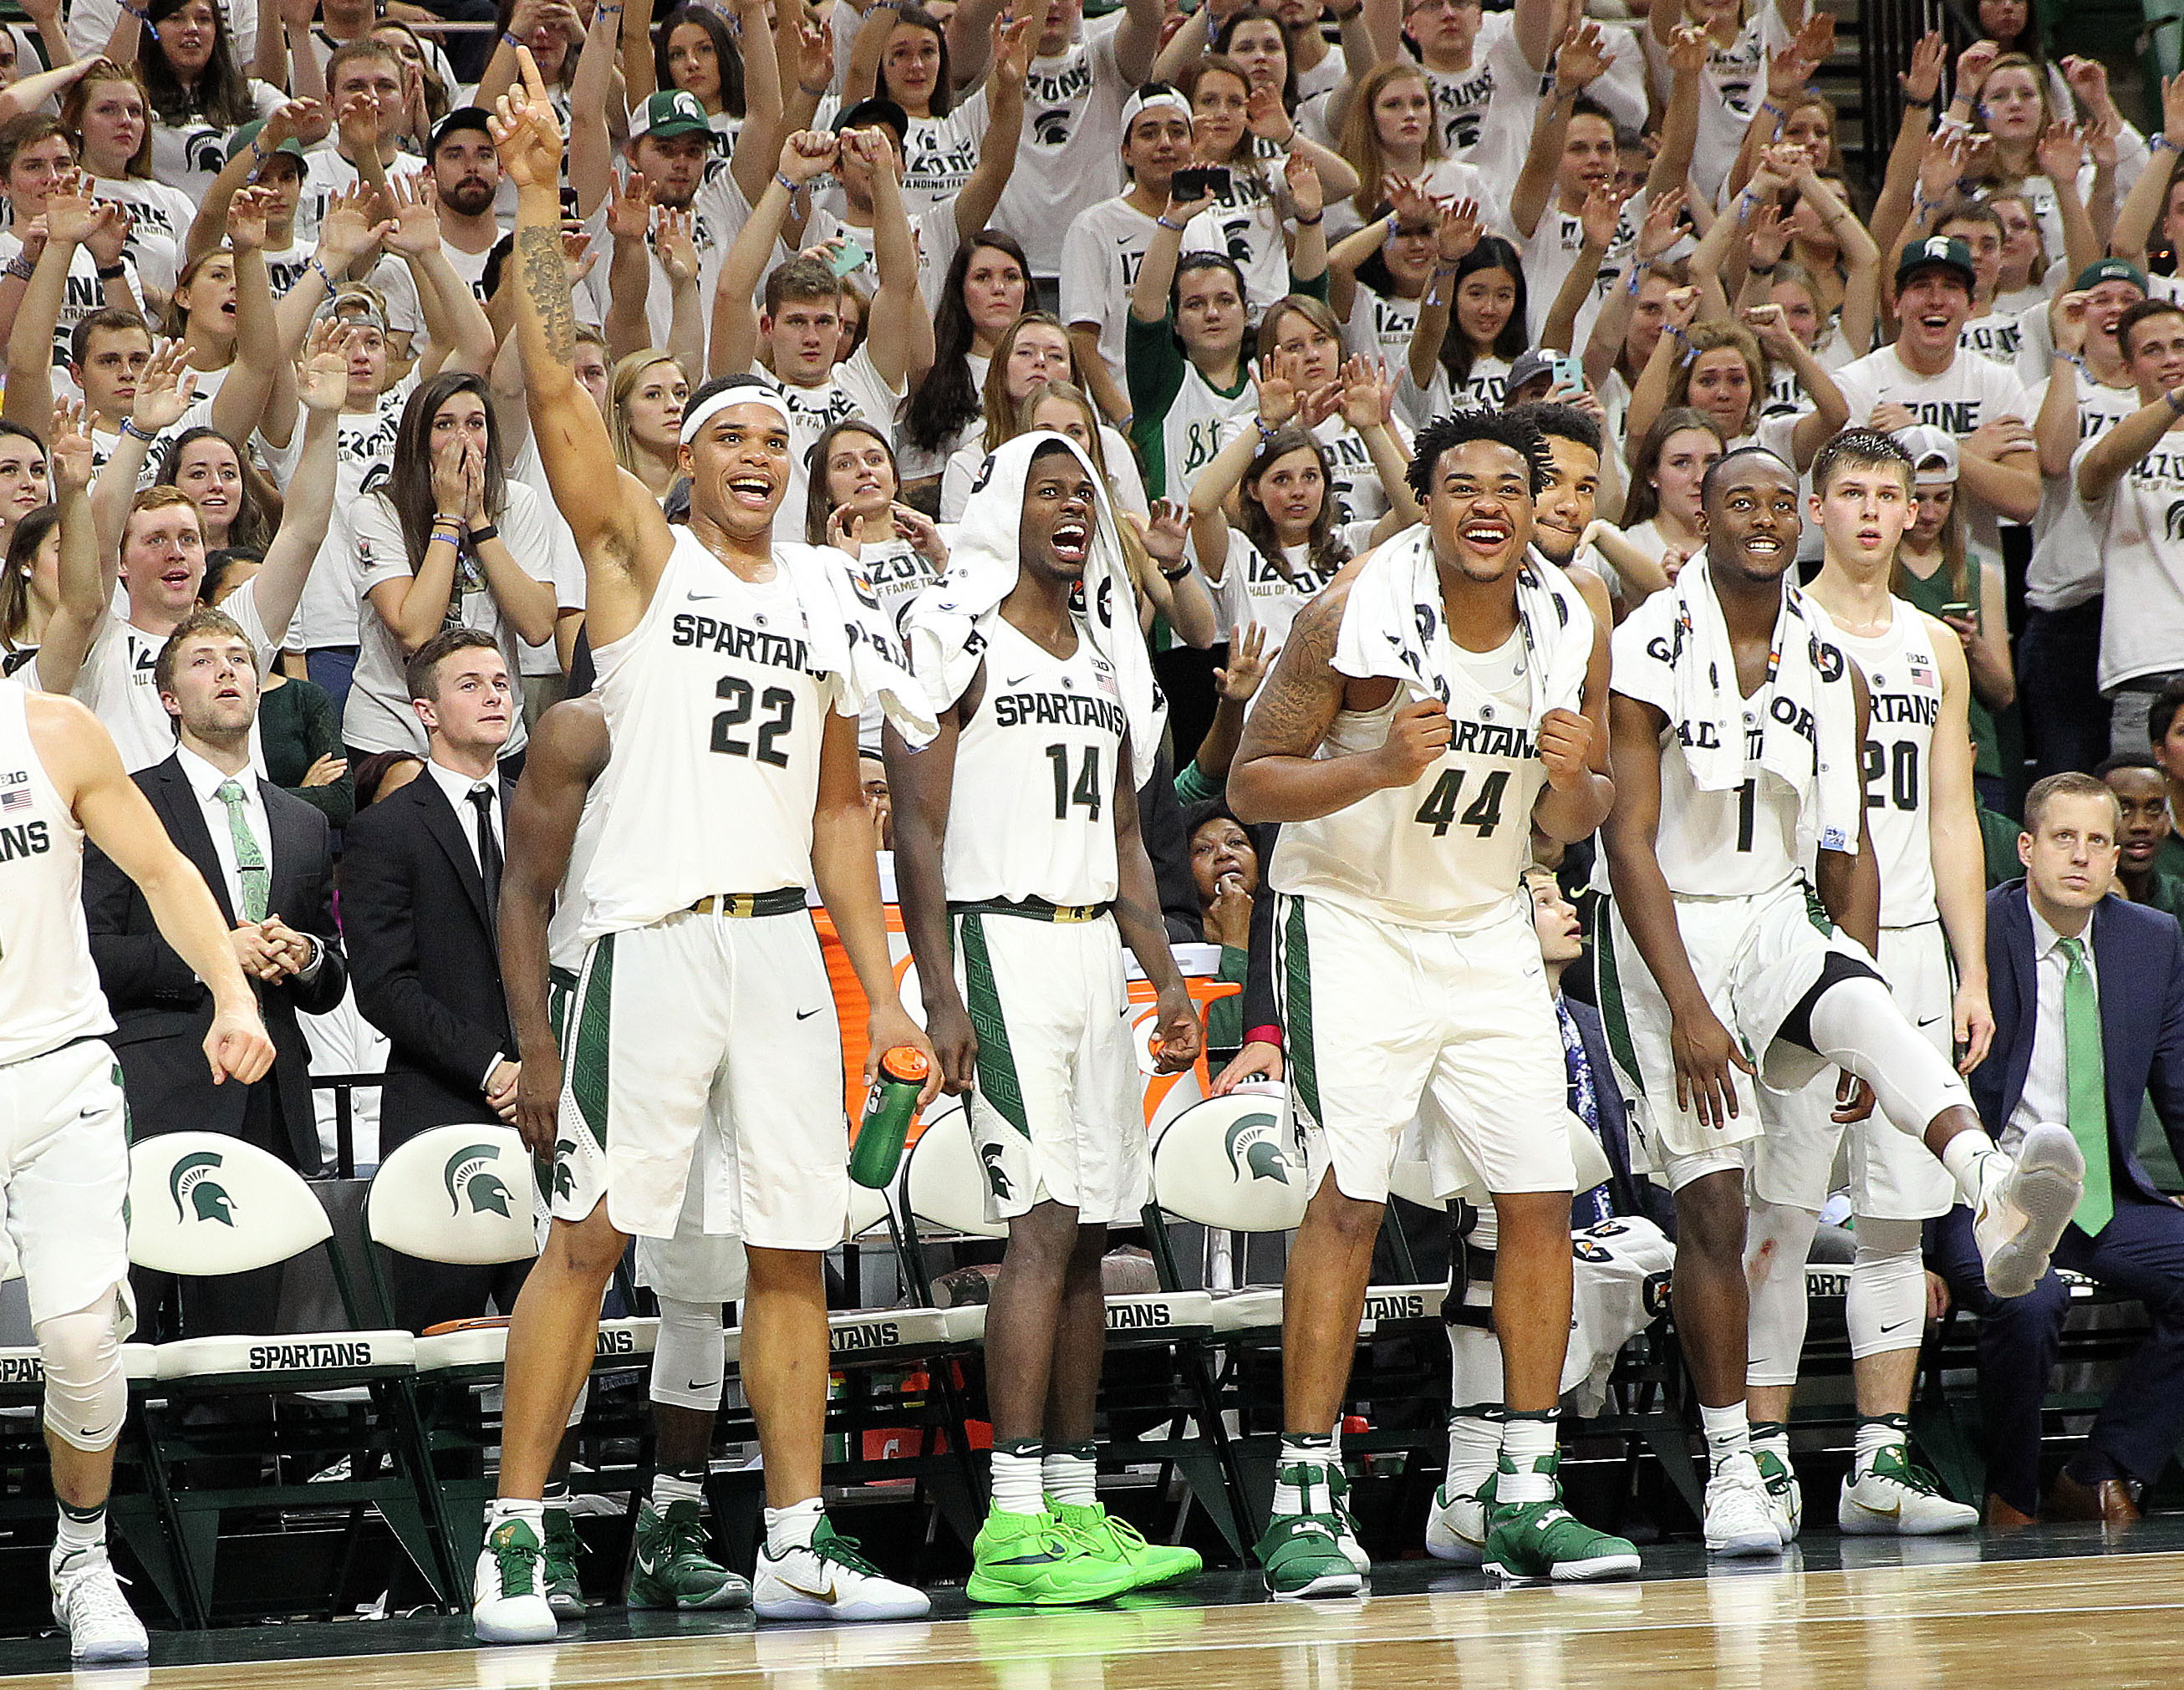 Michigan State Basketball >> Michigan State Basketball Preview St Johns The Only Colors